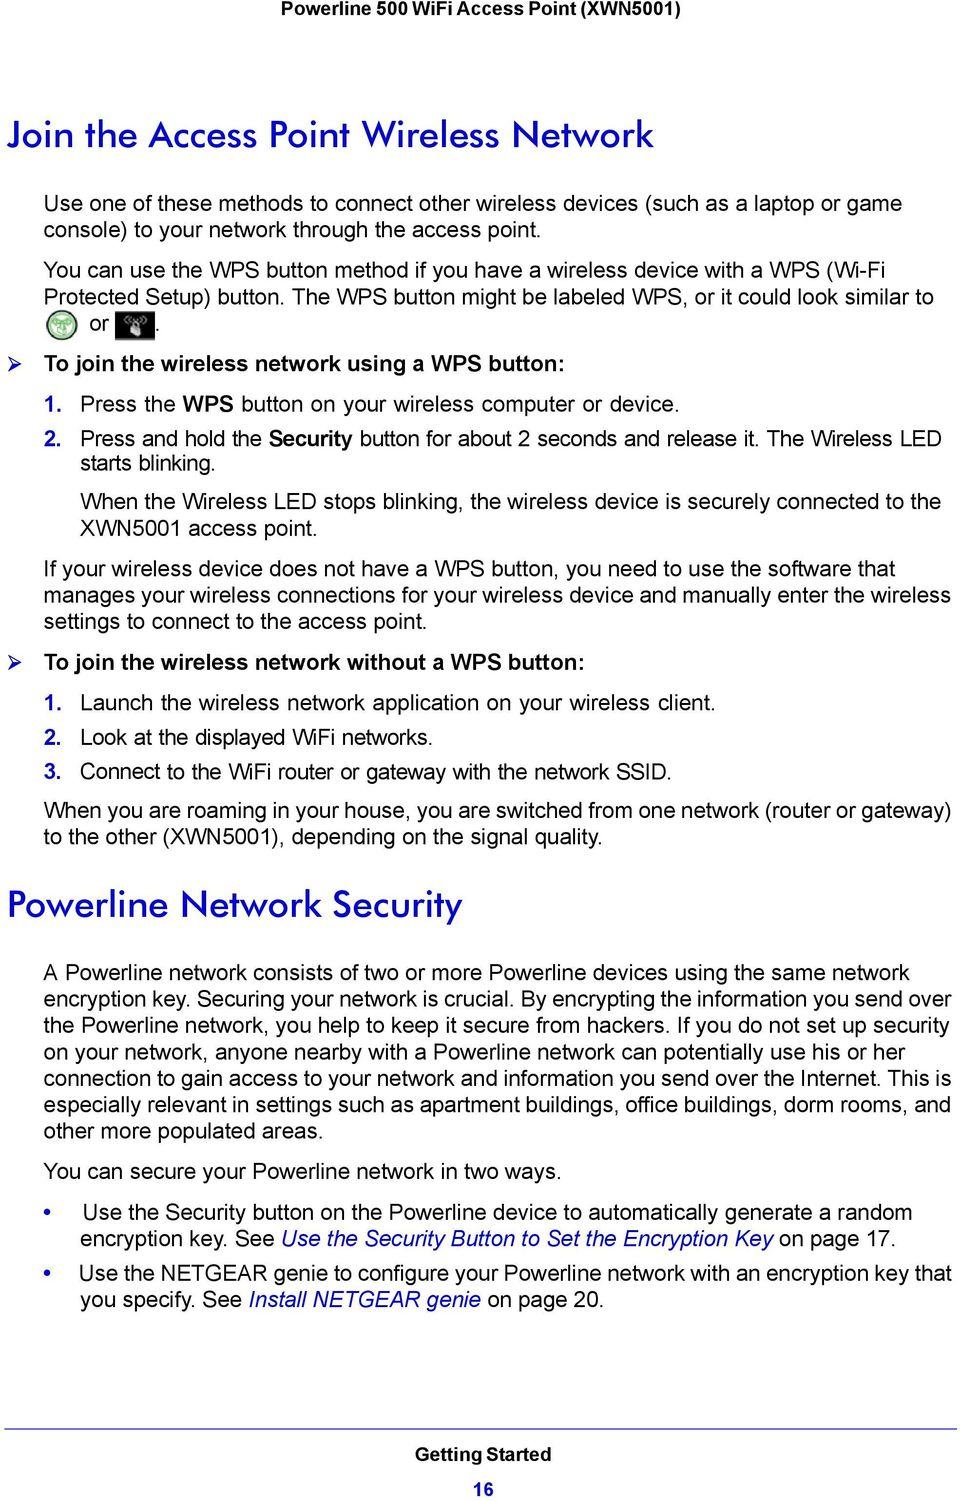 To join the wireless network using a WPS button: 1. Press the WPS button on your wireless computer or device. 2. Press and hold the Security button for about 2 seconds and release it.